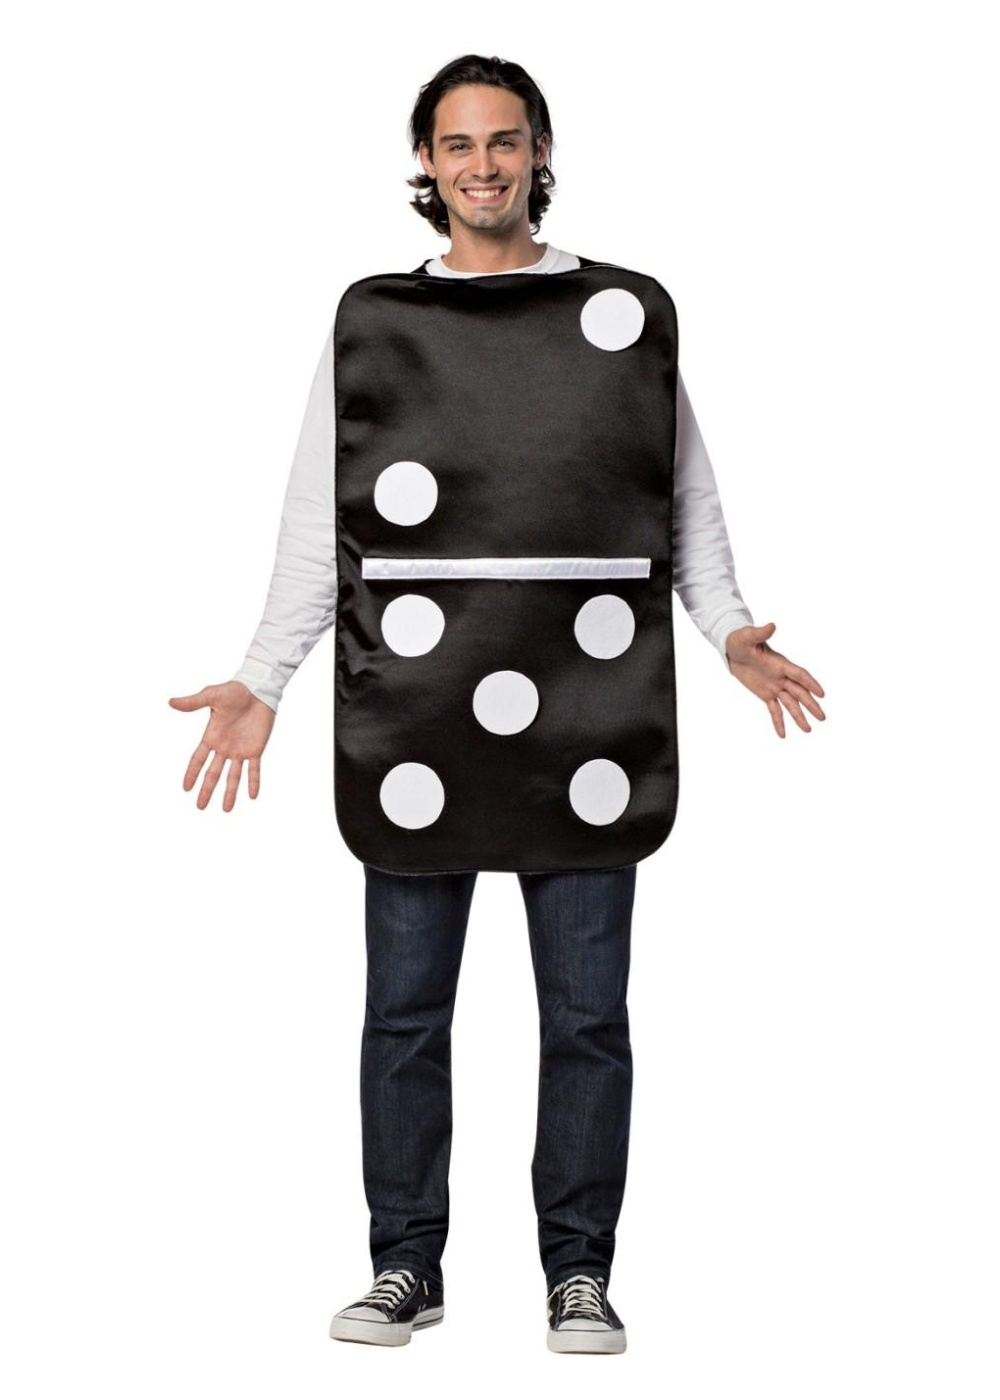 Dominoes Game Costume